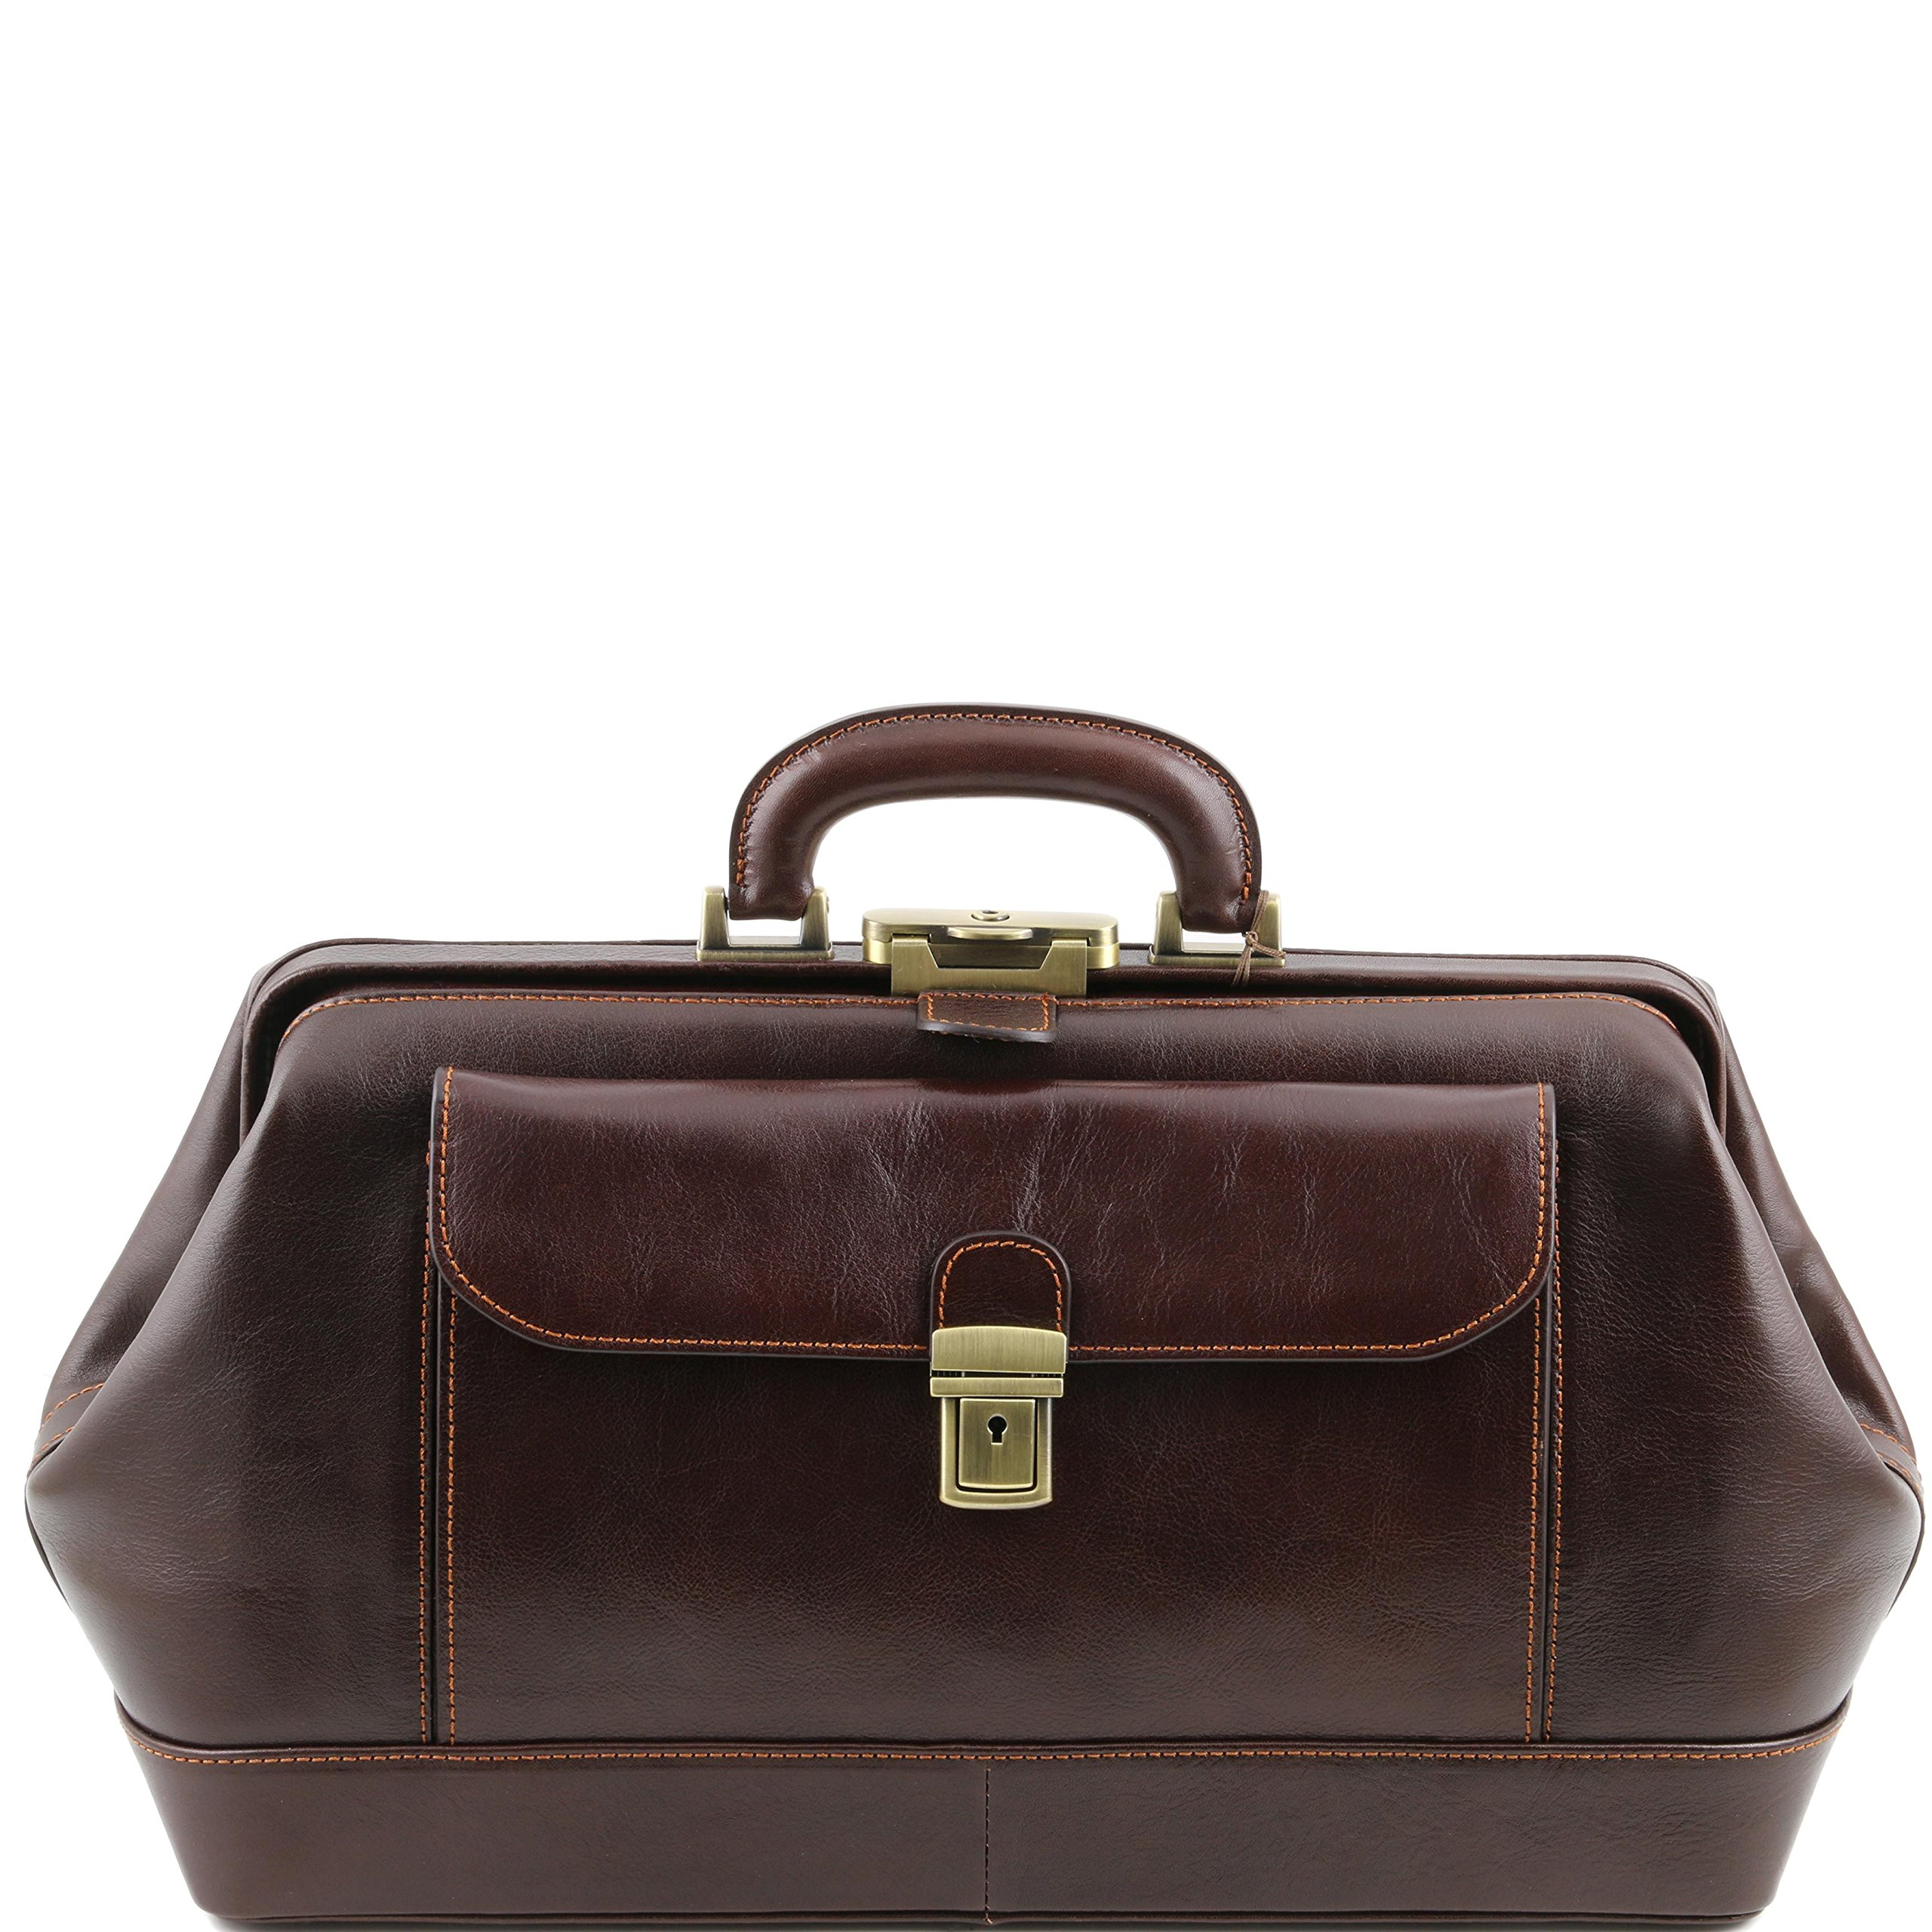 Tuscany Leather Bernini Exclusive leather doctor bag Dark Brown